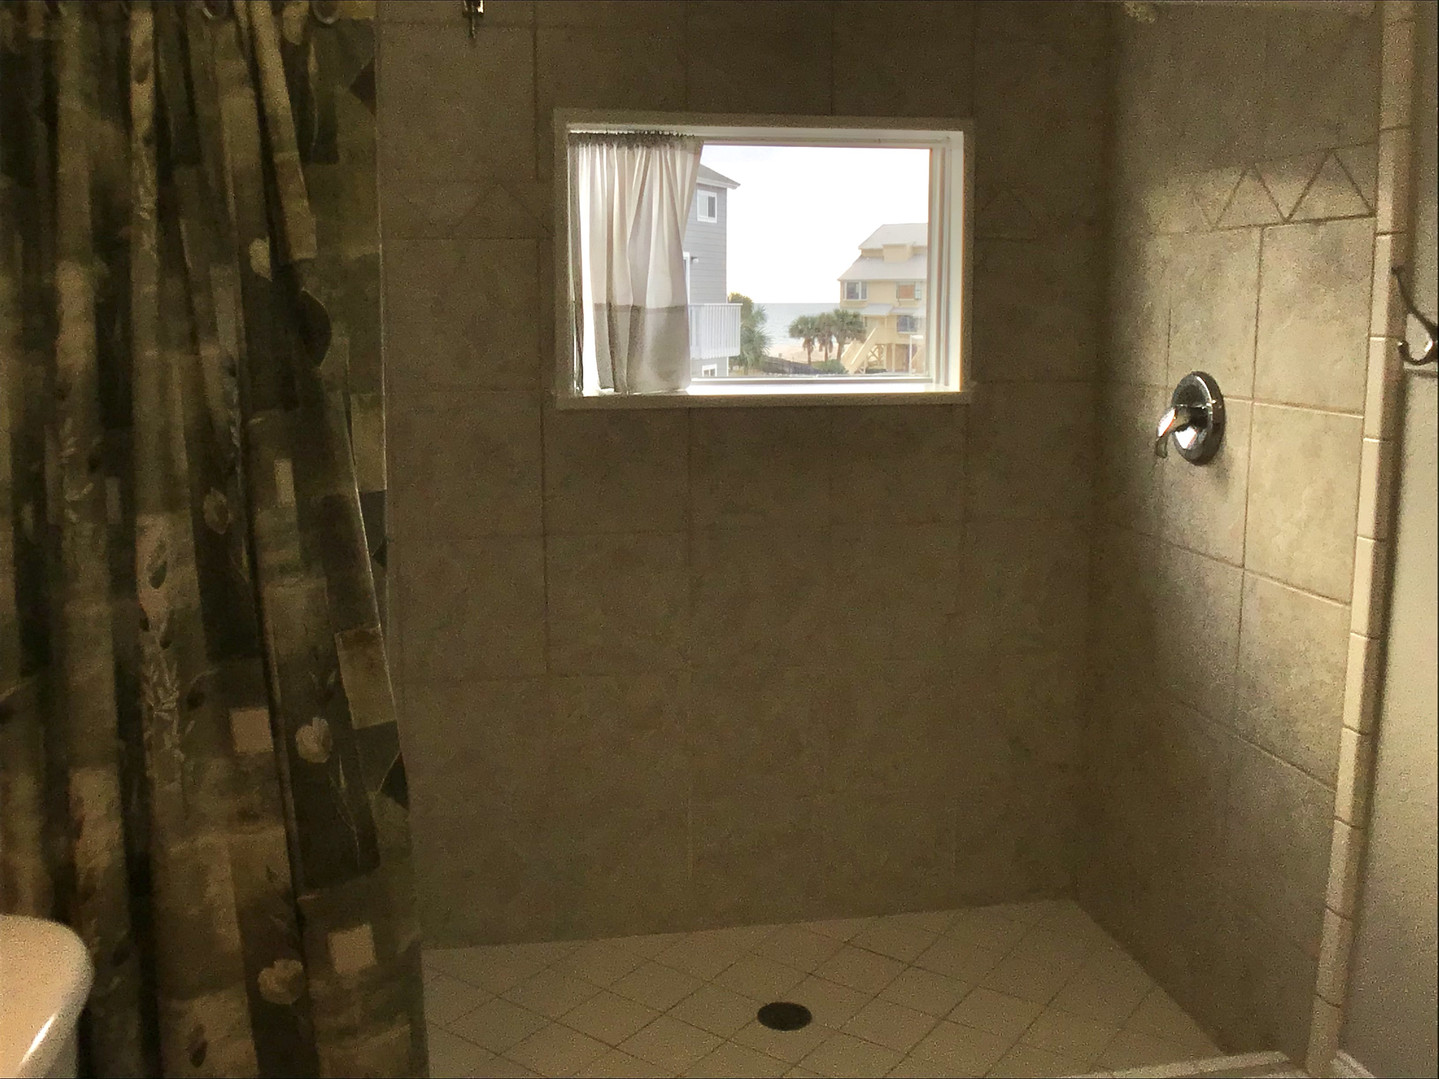 Large walk-in tiled shower with view